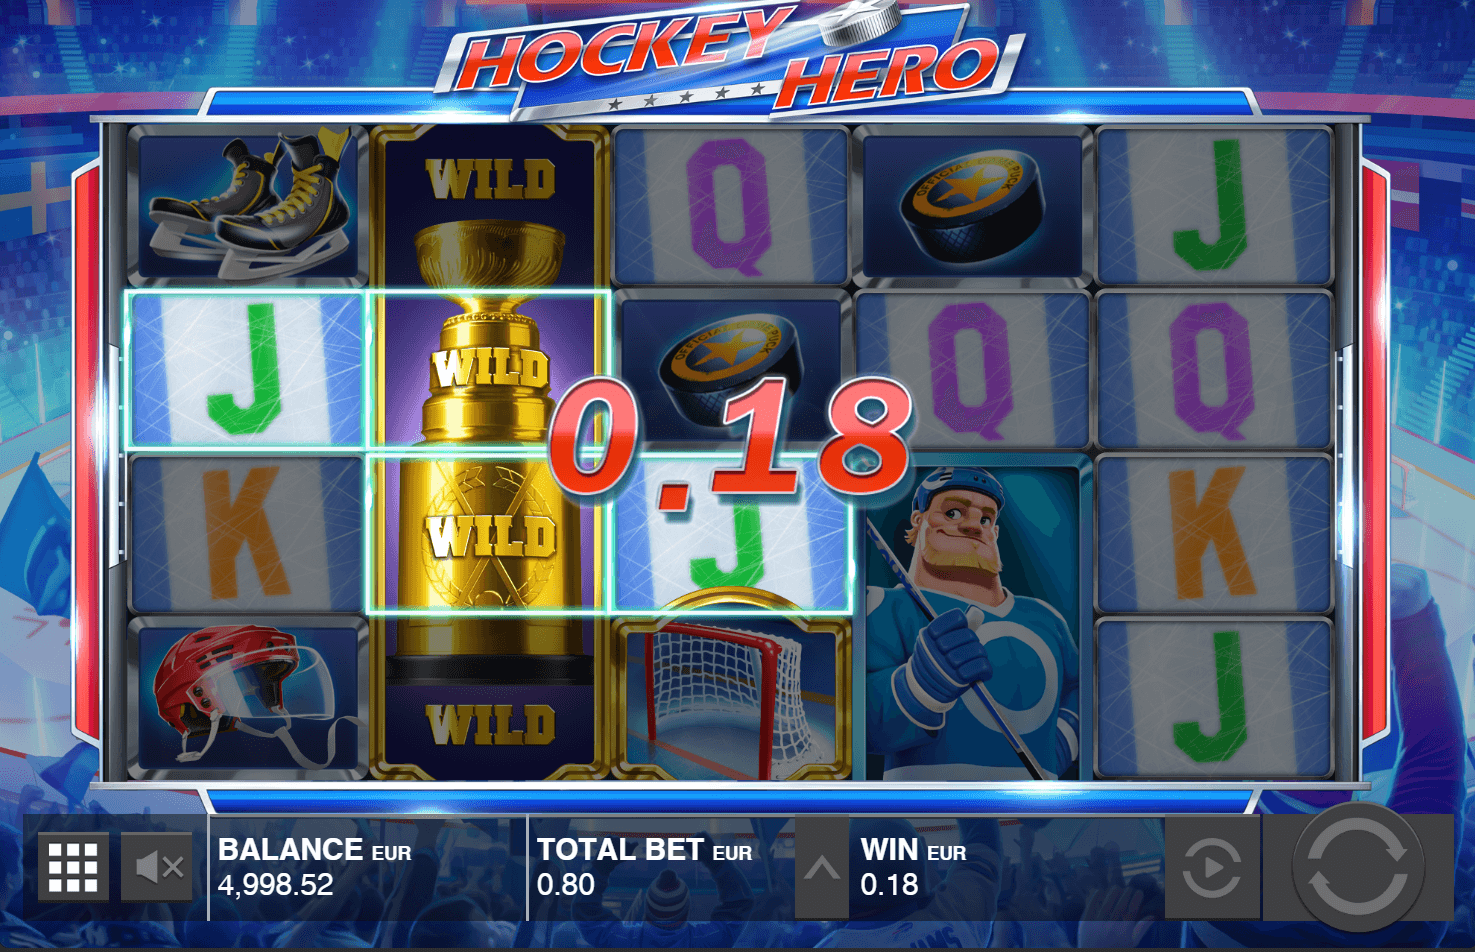 Spiele Hockey Hero - Video Slots Online